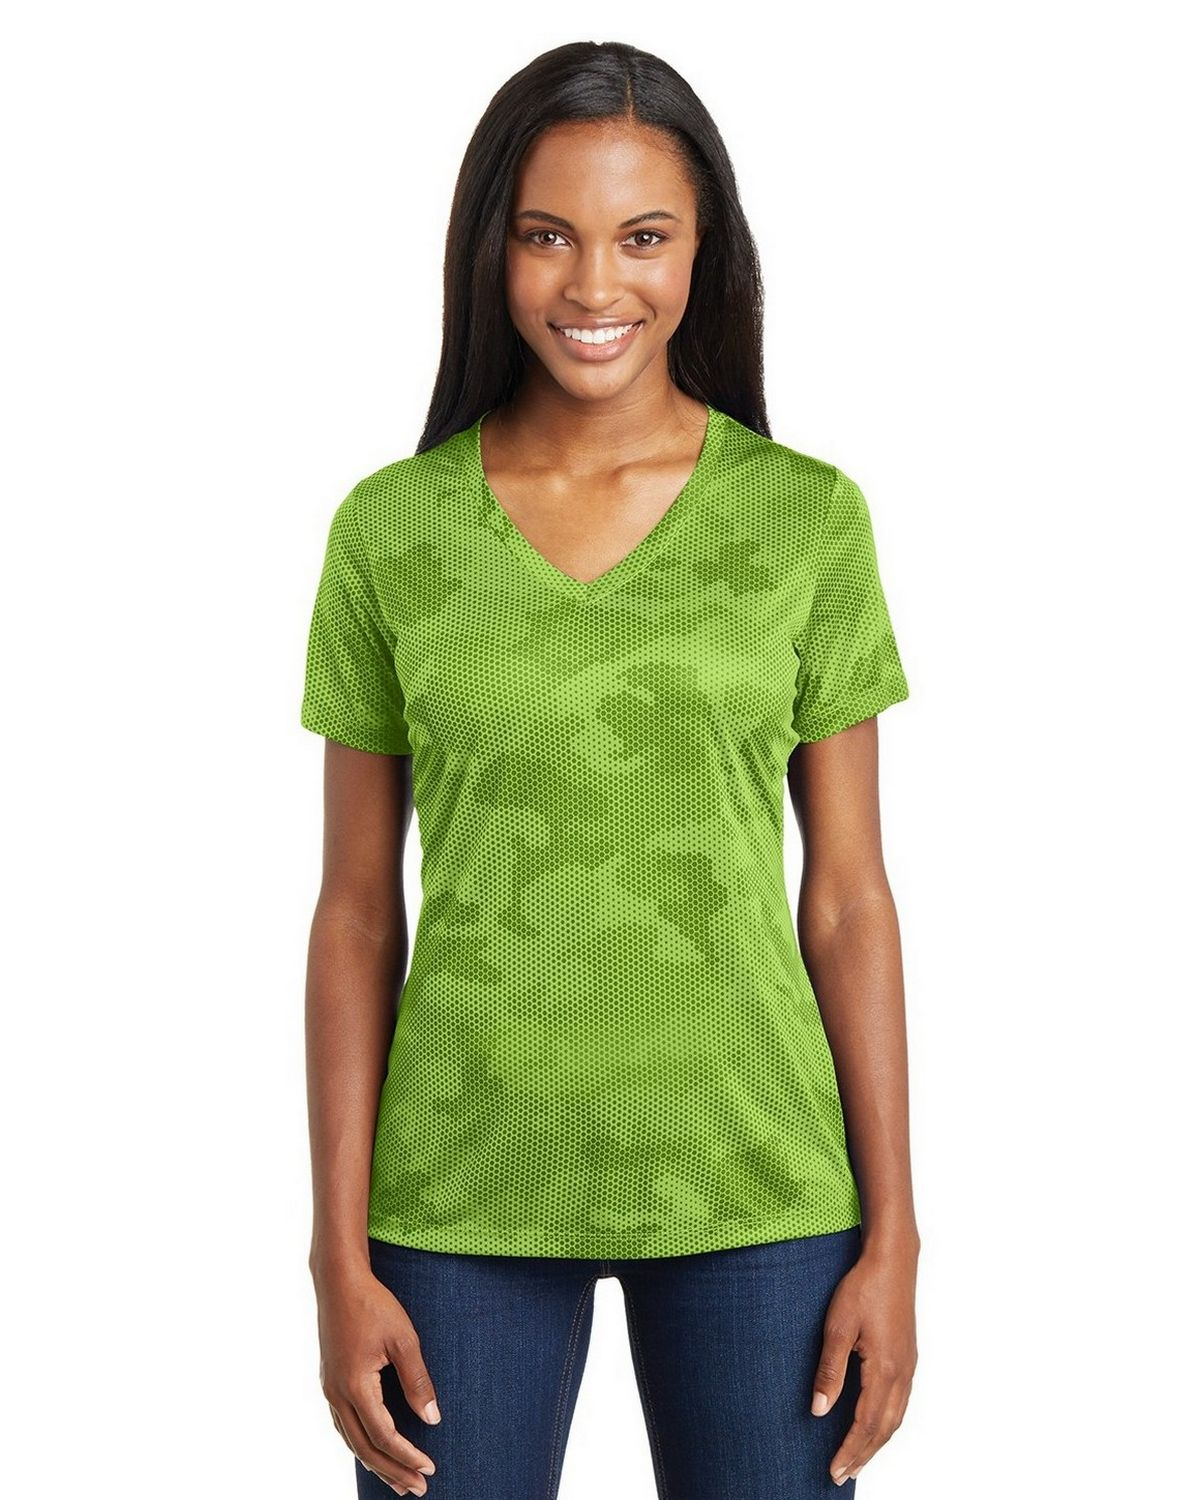 Sport Tek Lst370 Ladies Camohex V Neck T Shirt Find & download free graphic resources for sports shirt. sport tek lst370 women s camohex v neck t shirt